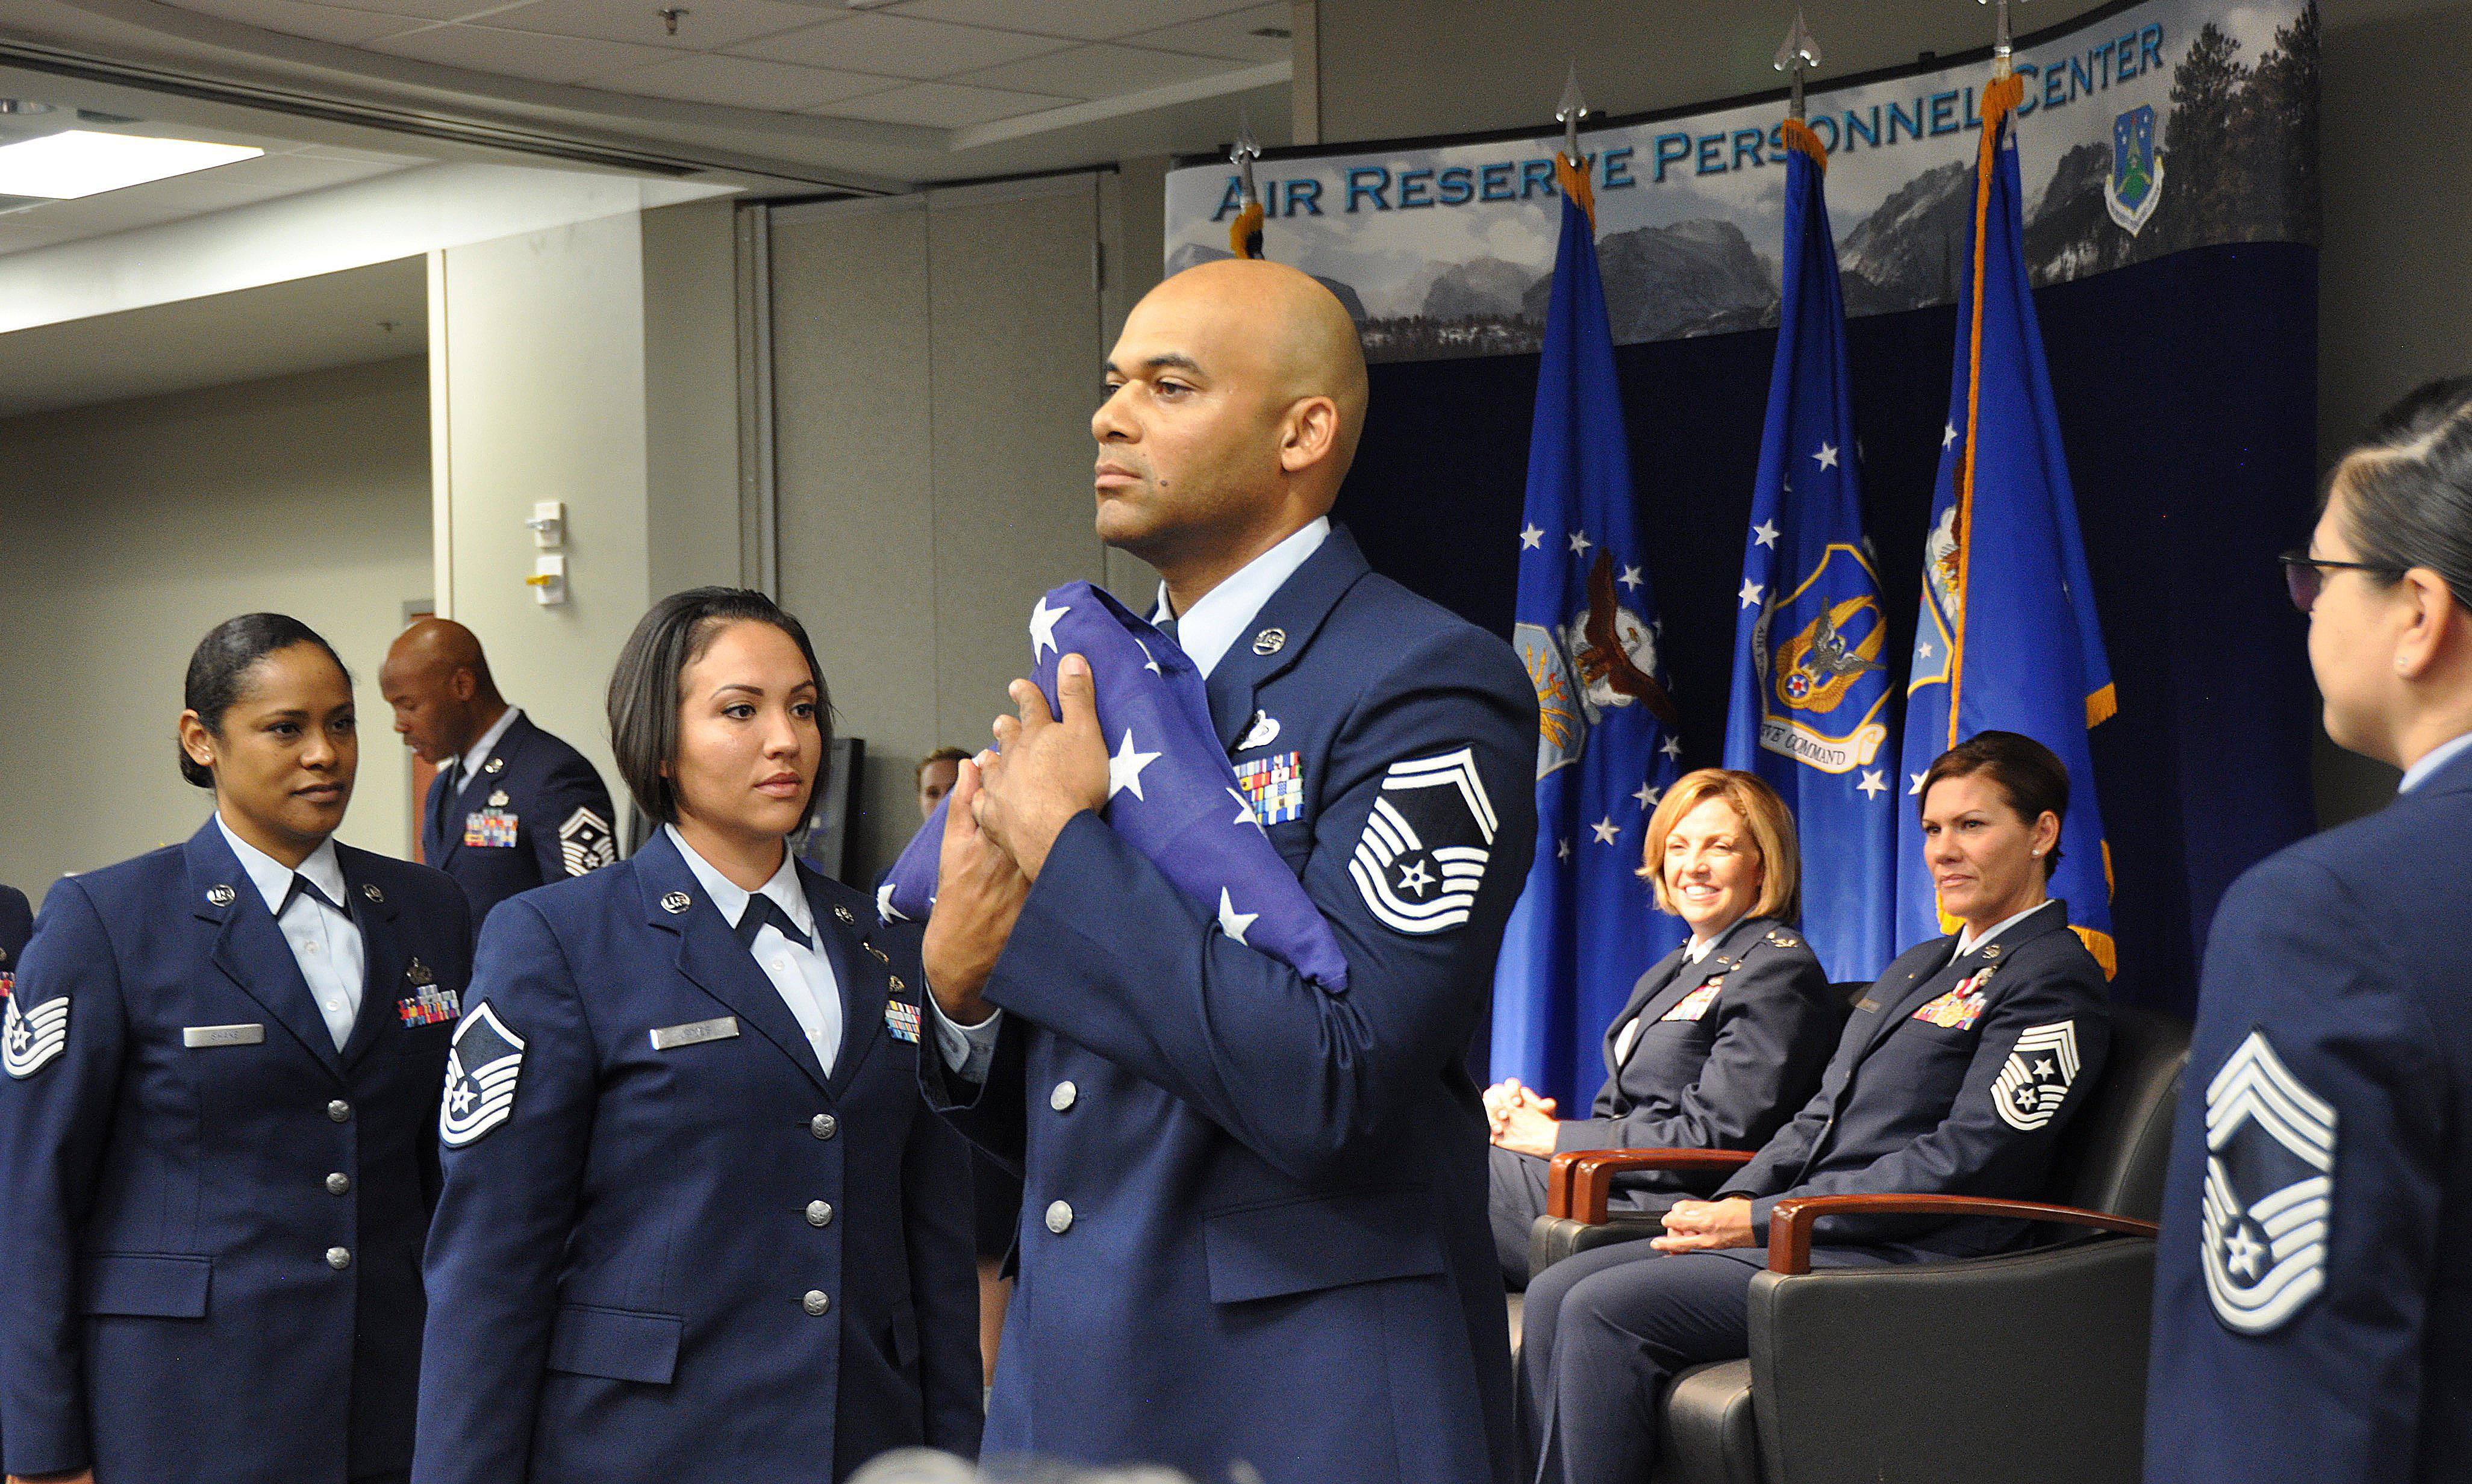 ARPC Command Chief celebrates 28 years of AF service > Air